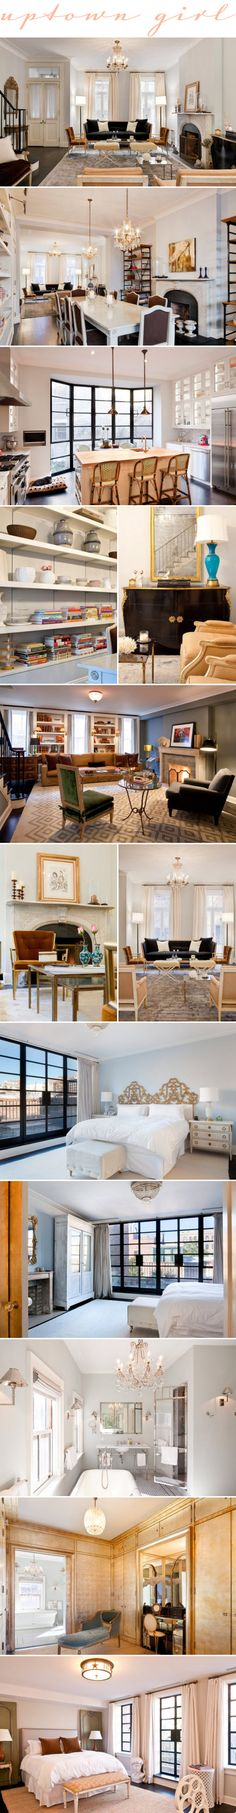 Cookbook author, Katie Lee, sold these Manhattan digs last year (whhhyyyy??) after having it redesigned by guru of understated elegance, Nate Berkus.~ Whatyoufancy.com